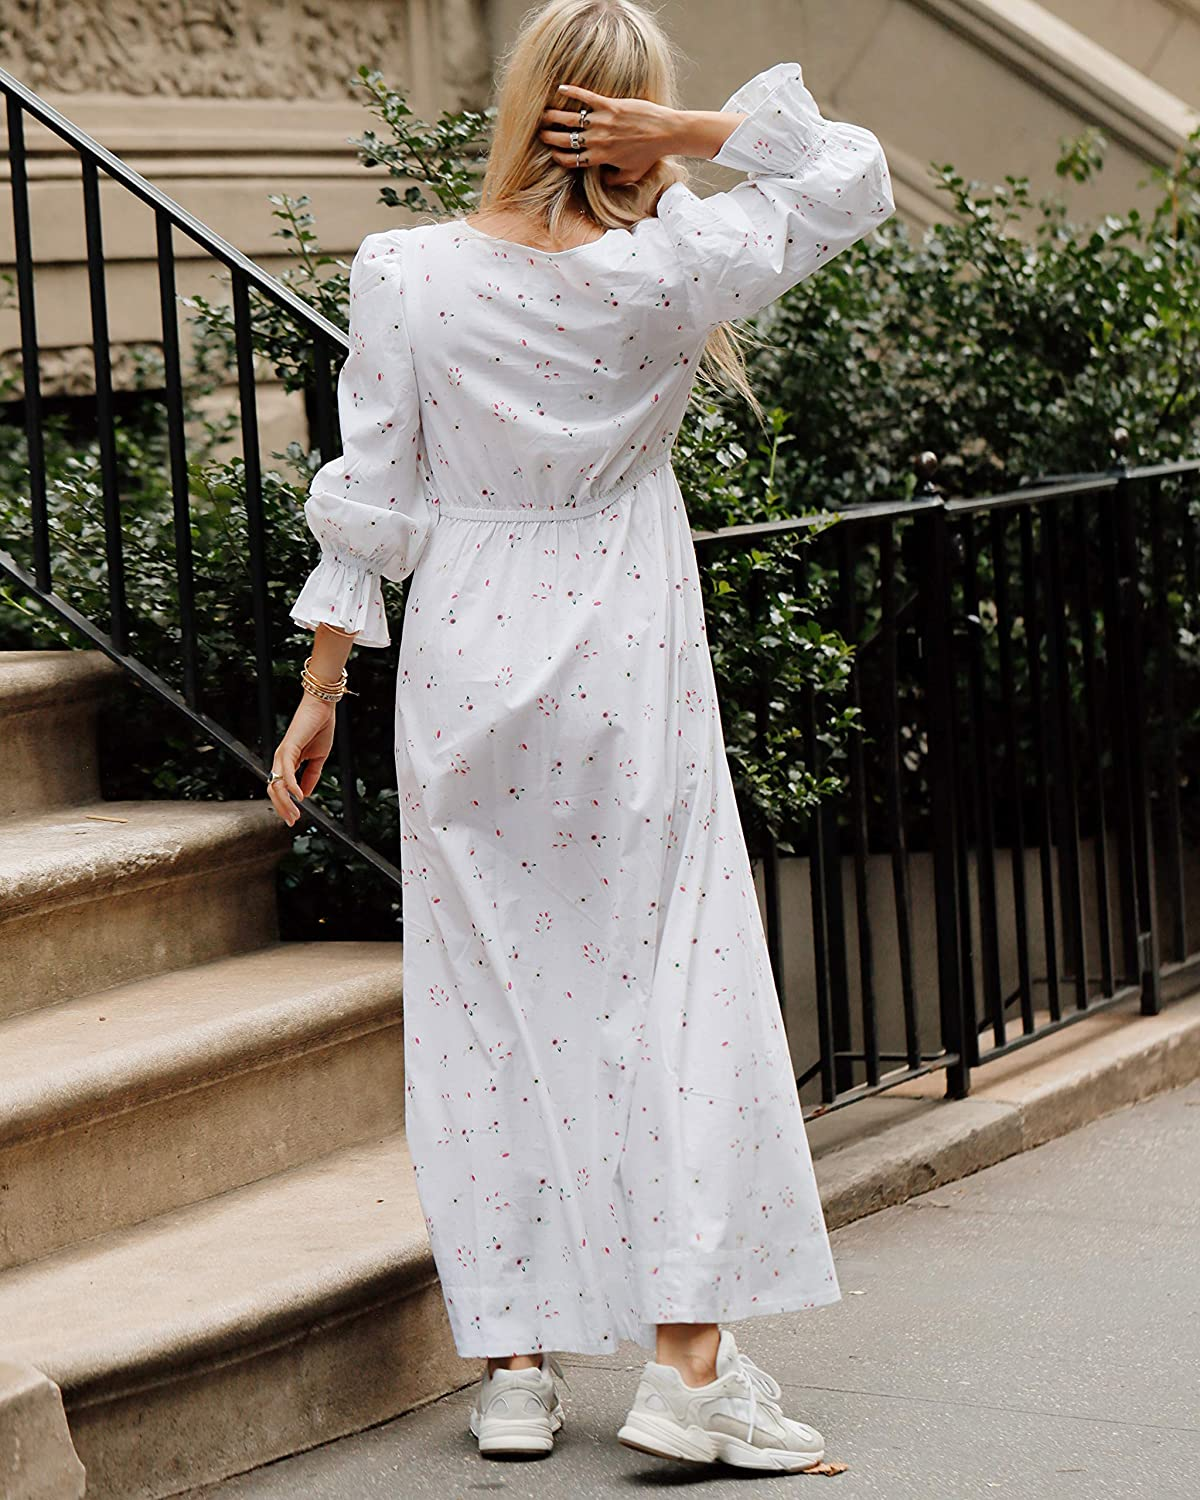 The Drop Women's White Floral Print Loose Fit V-Neck Maxi Dress by @thefashionguitar White Floral Print